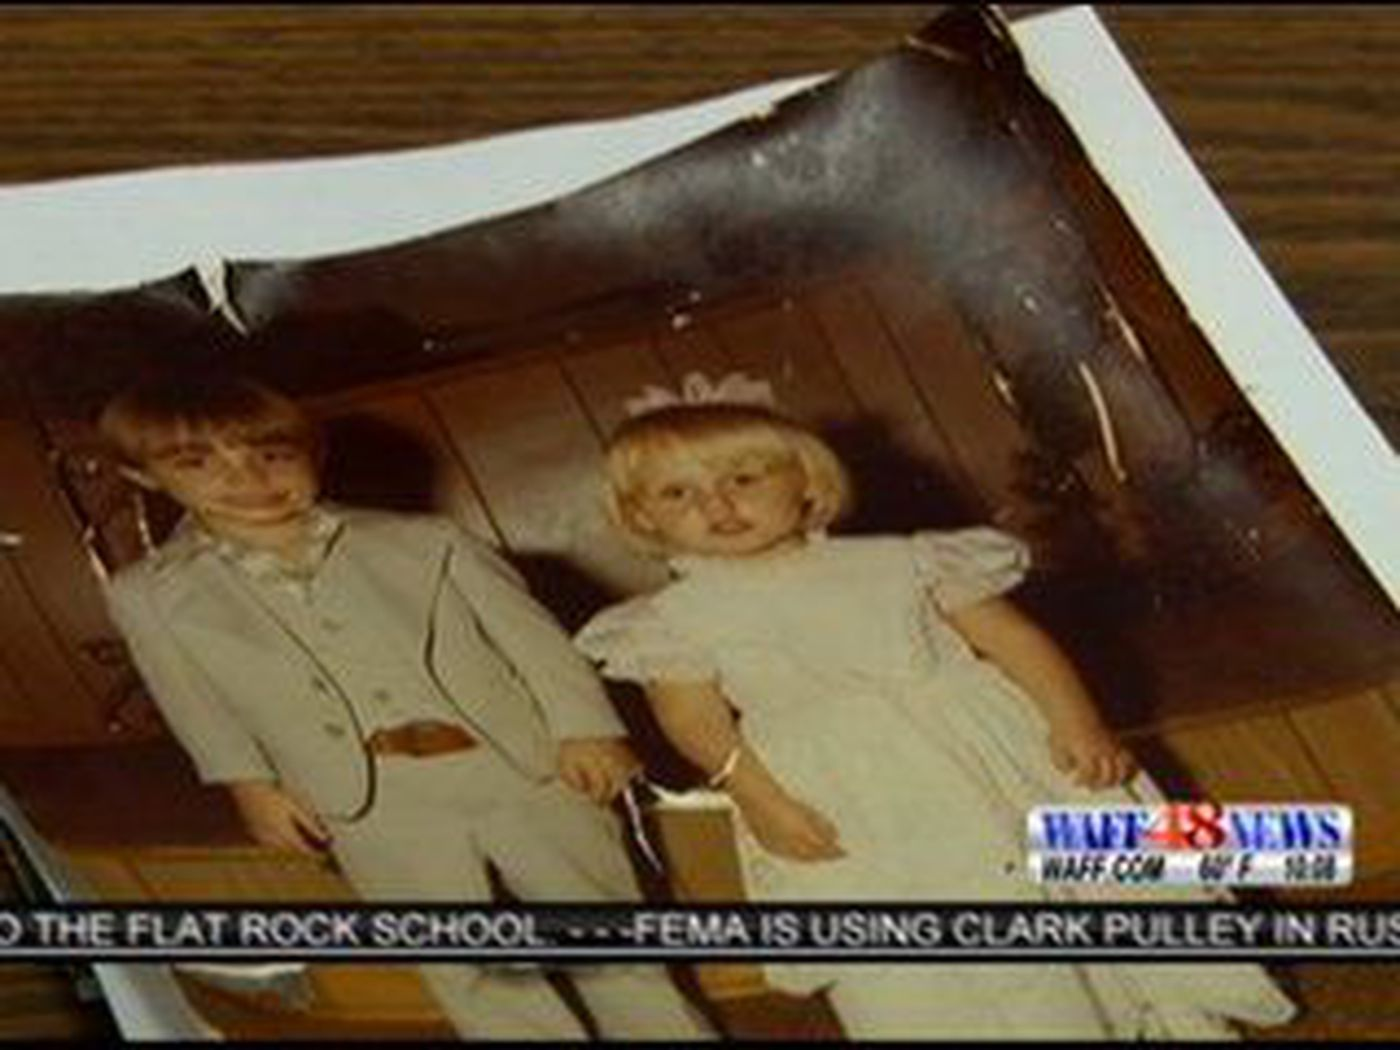 Facebook page collects pictures lost in storms